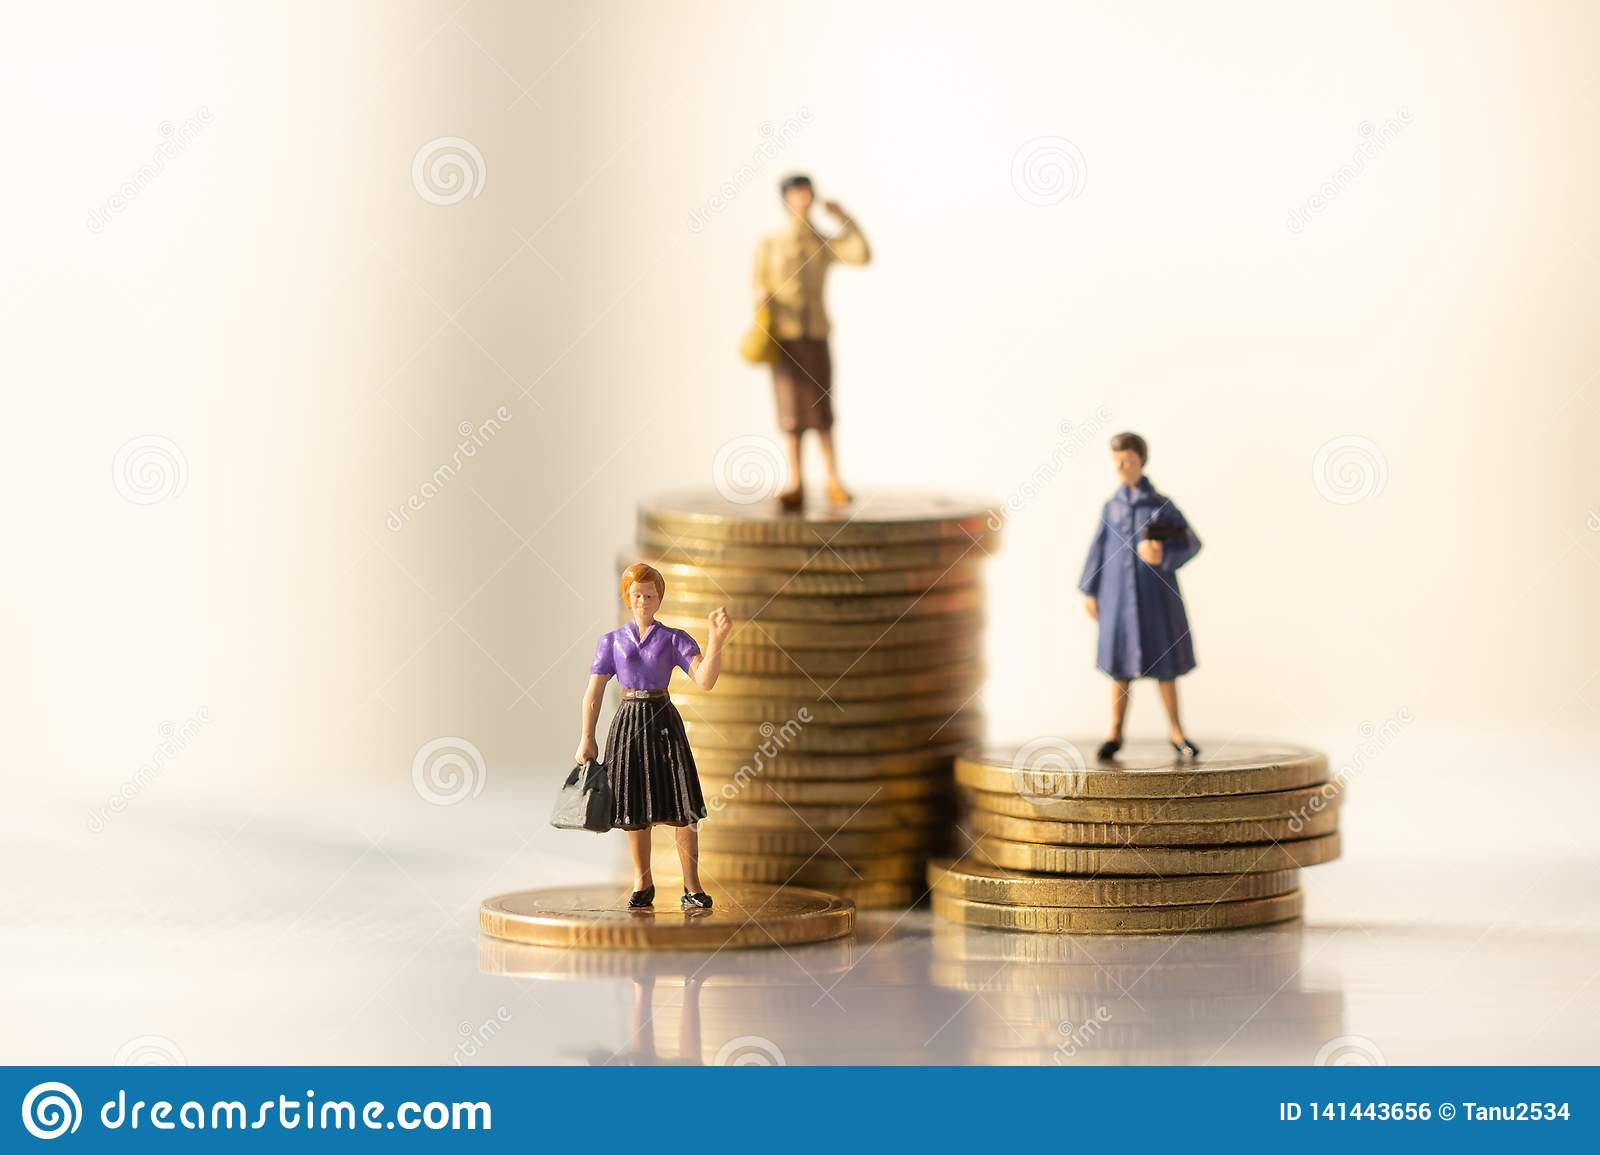 Concept of Retirement Money Plan and savings growth